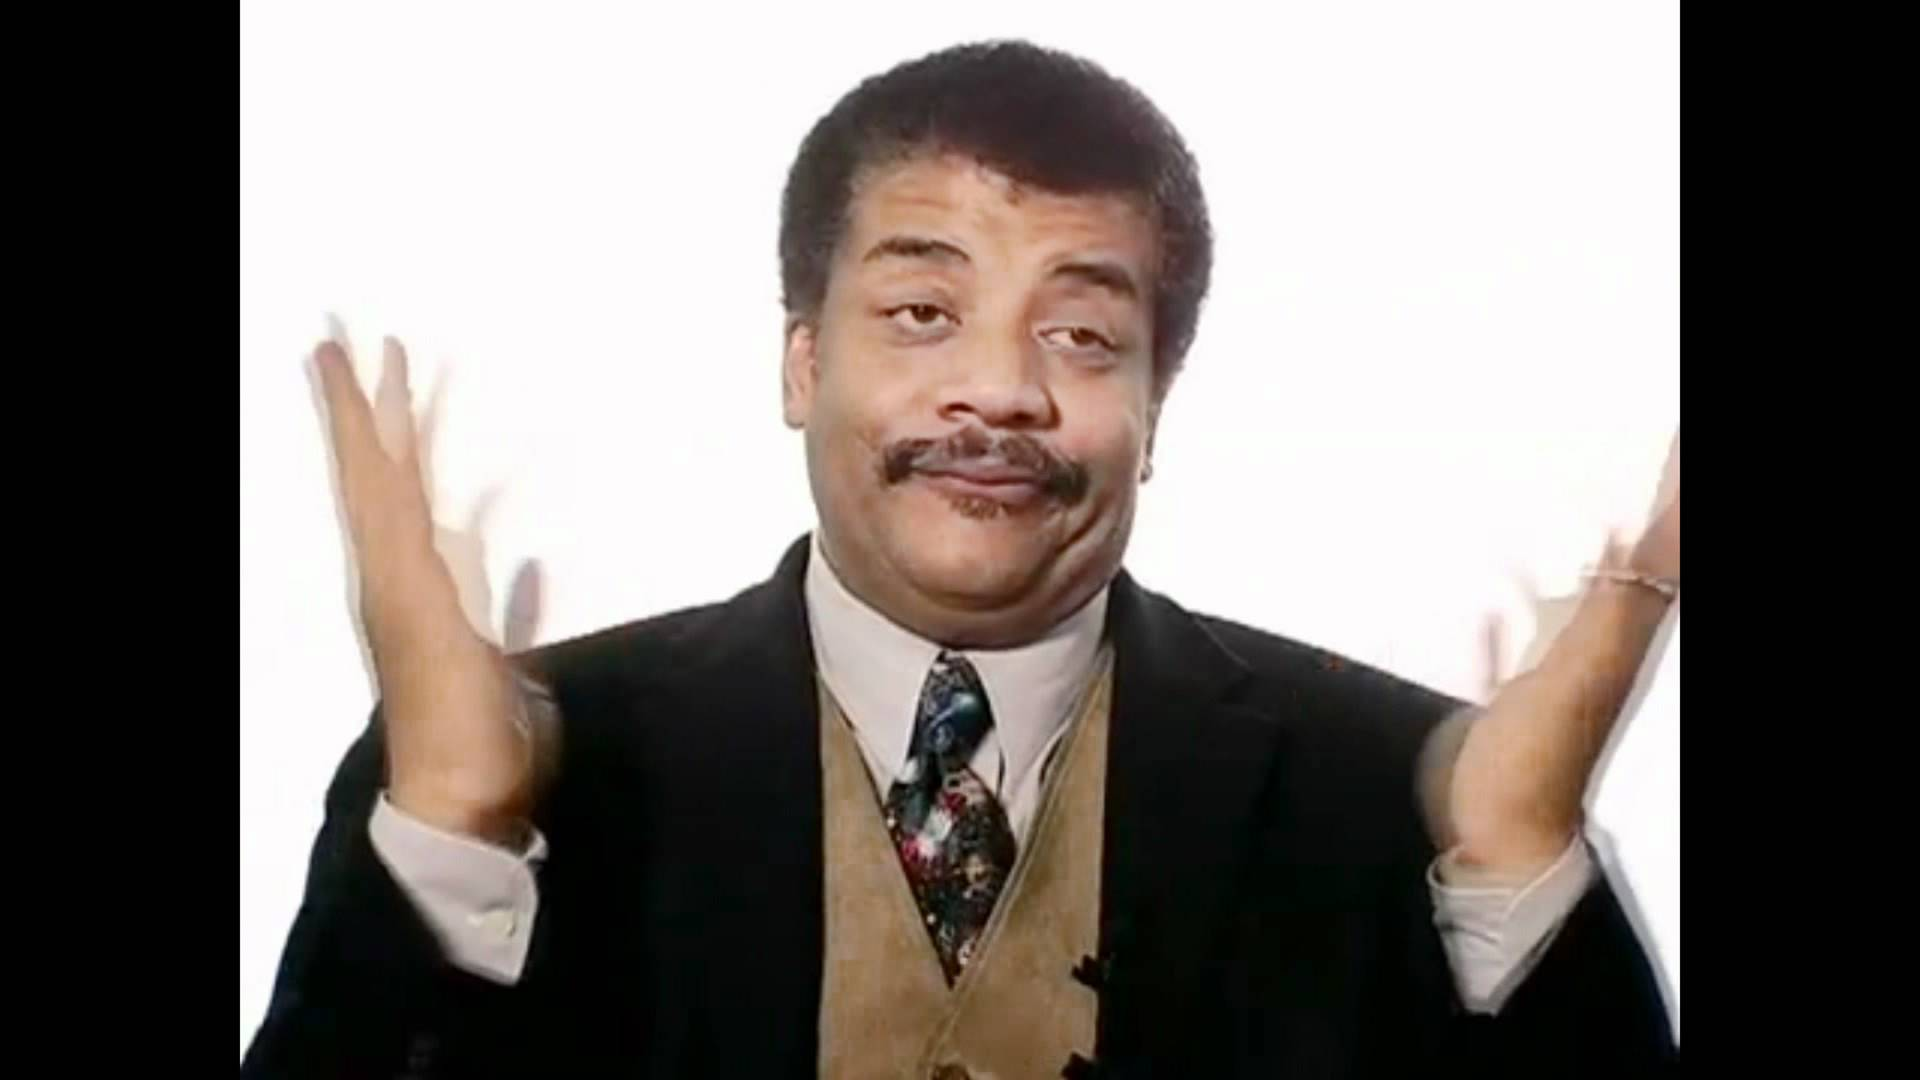 Neil Tyson Meme Funny Image Photo Joke 03